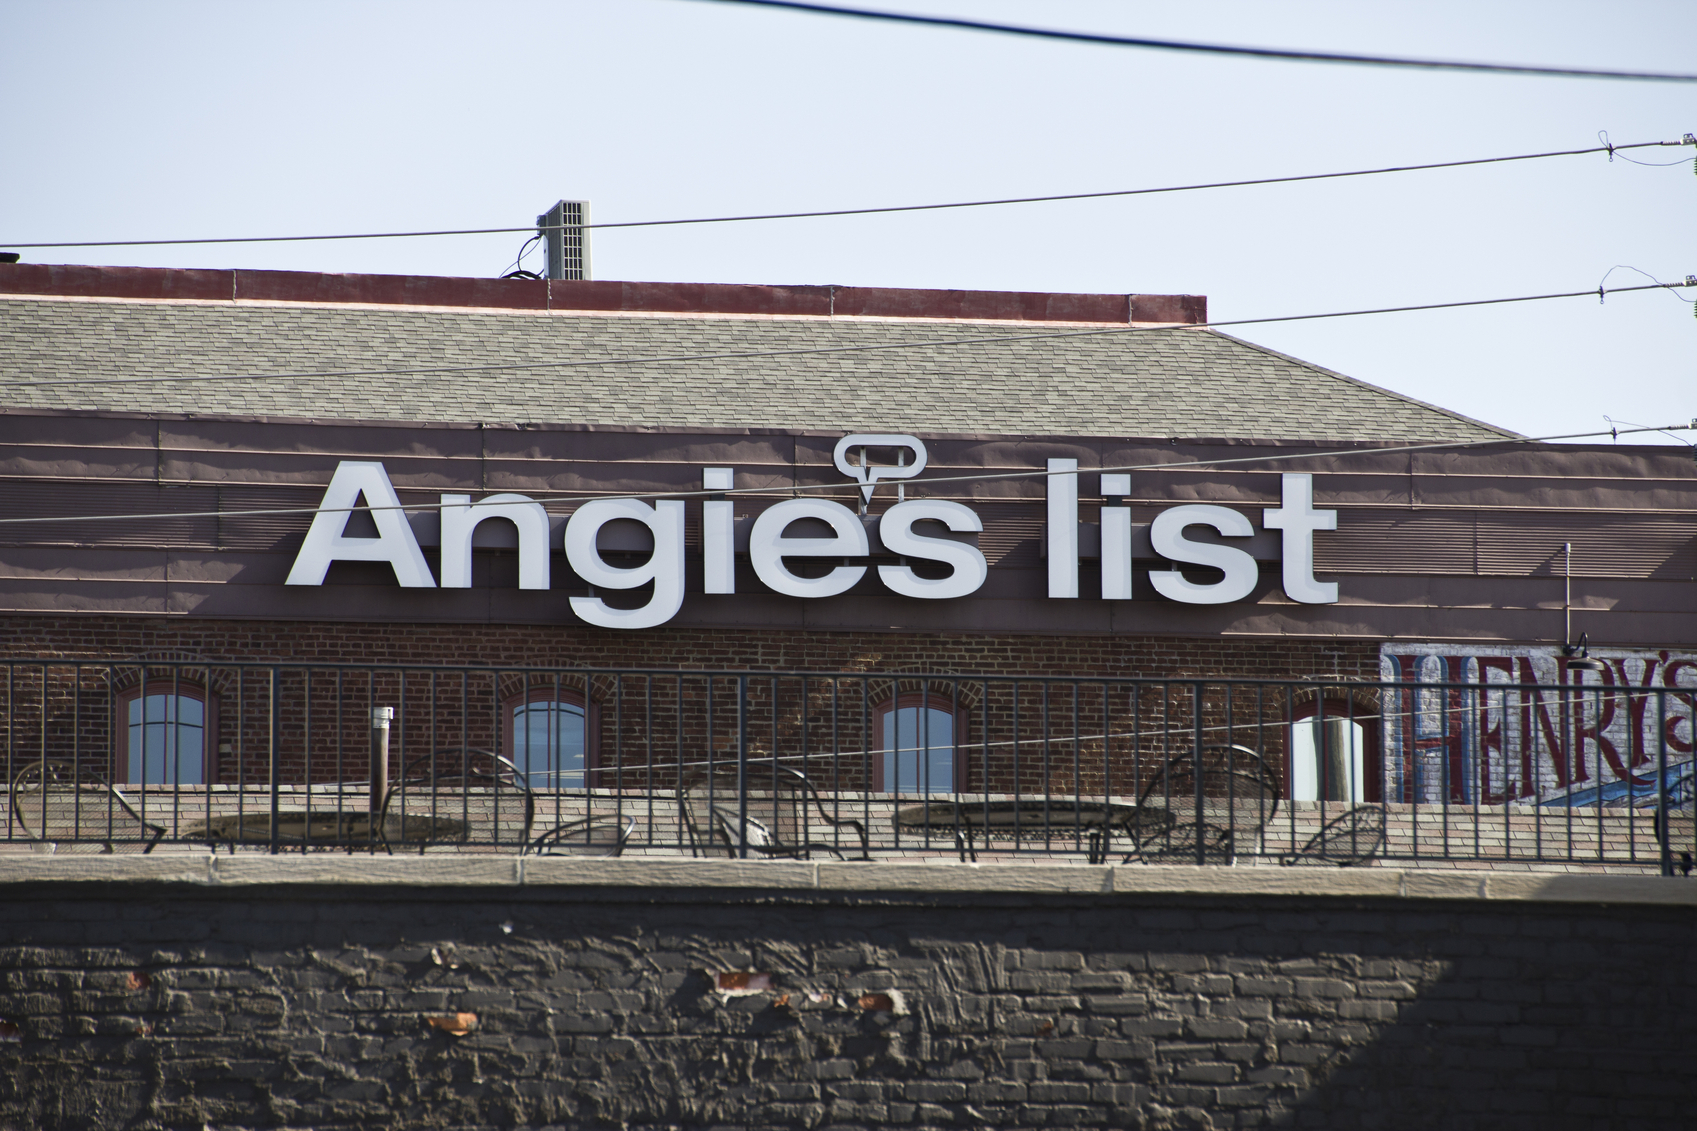 angies list is free, what does this mean for home design/build companies?